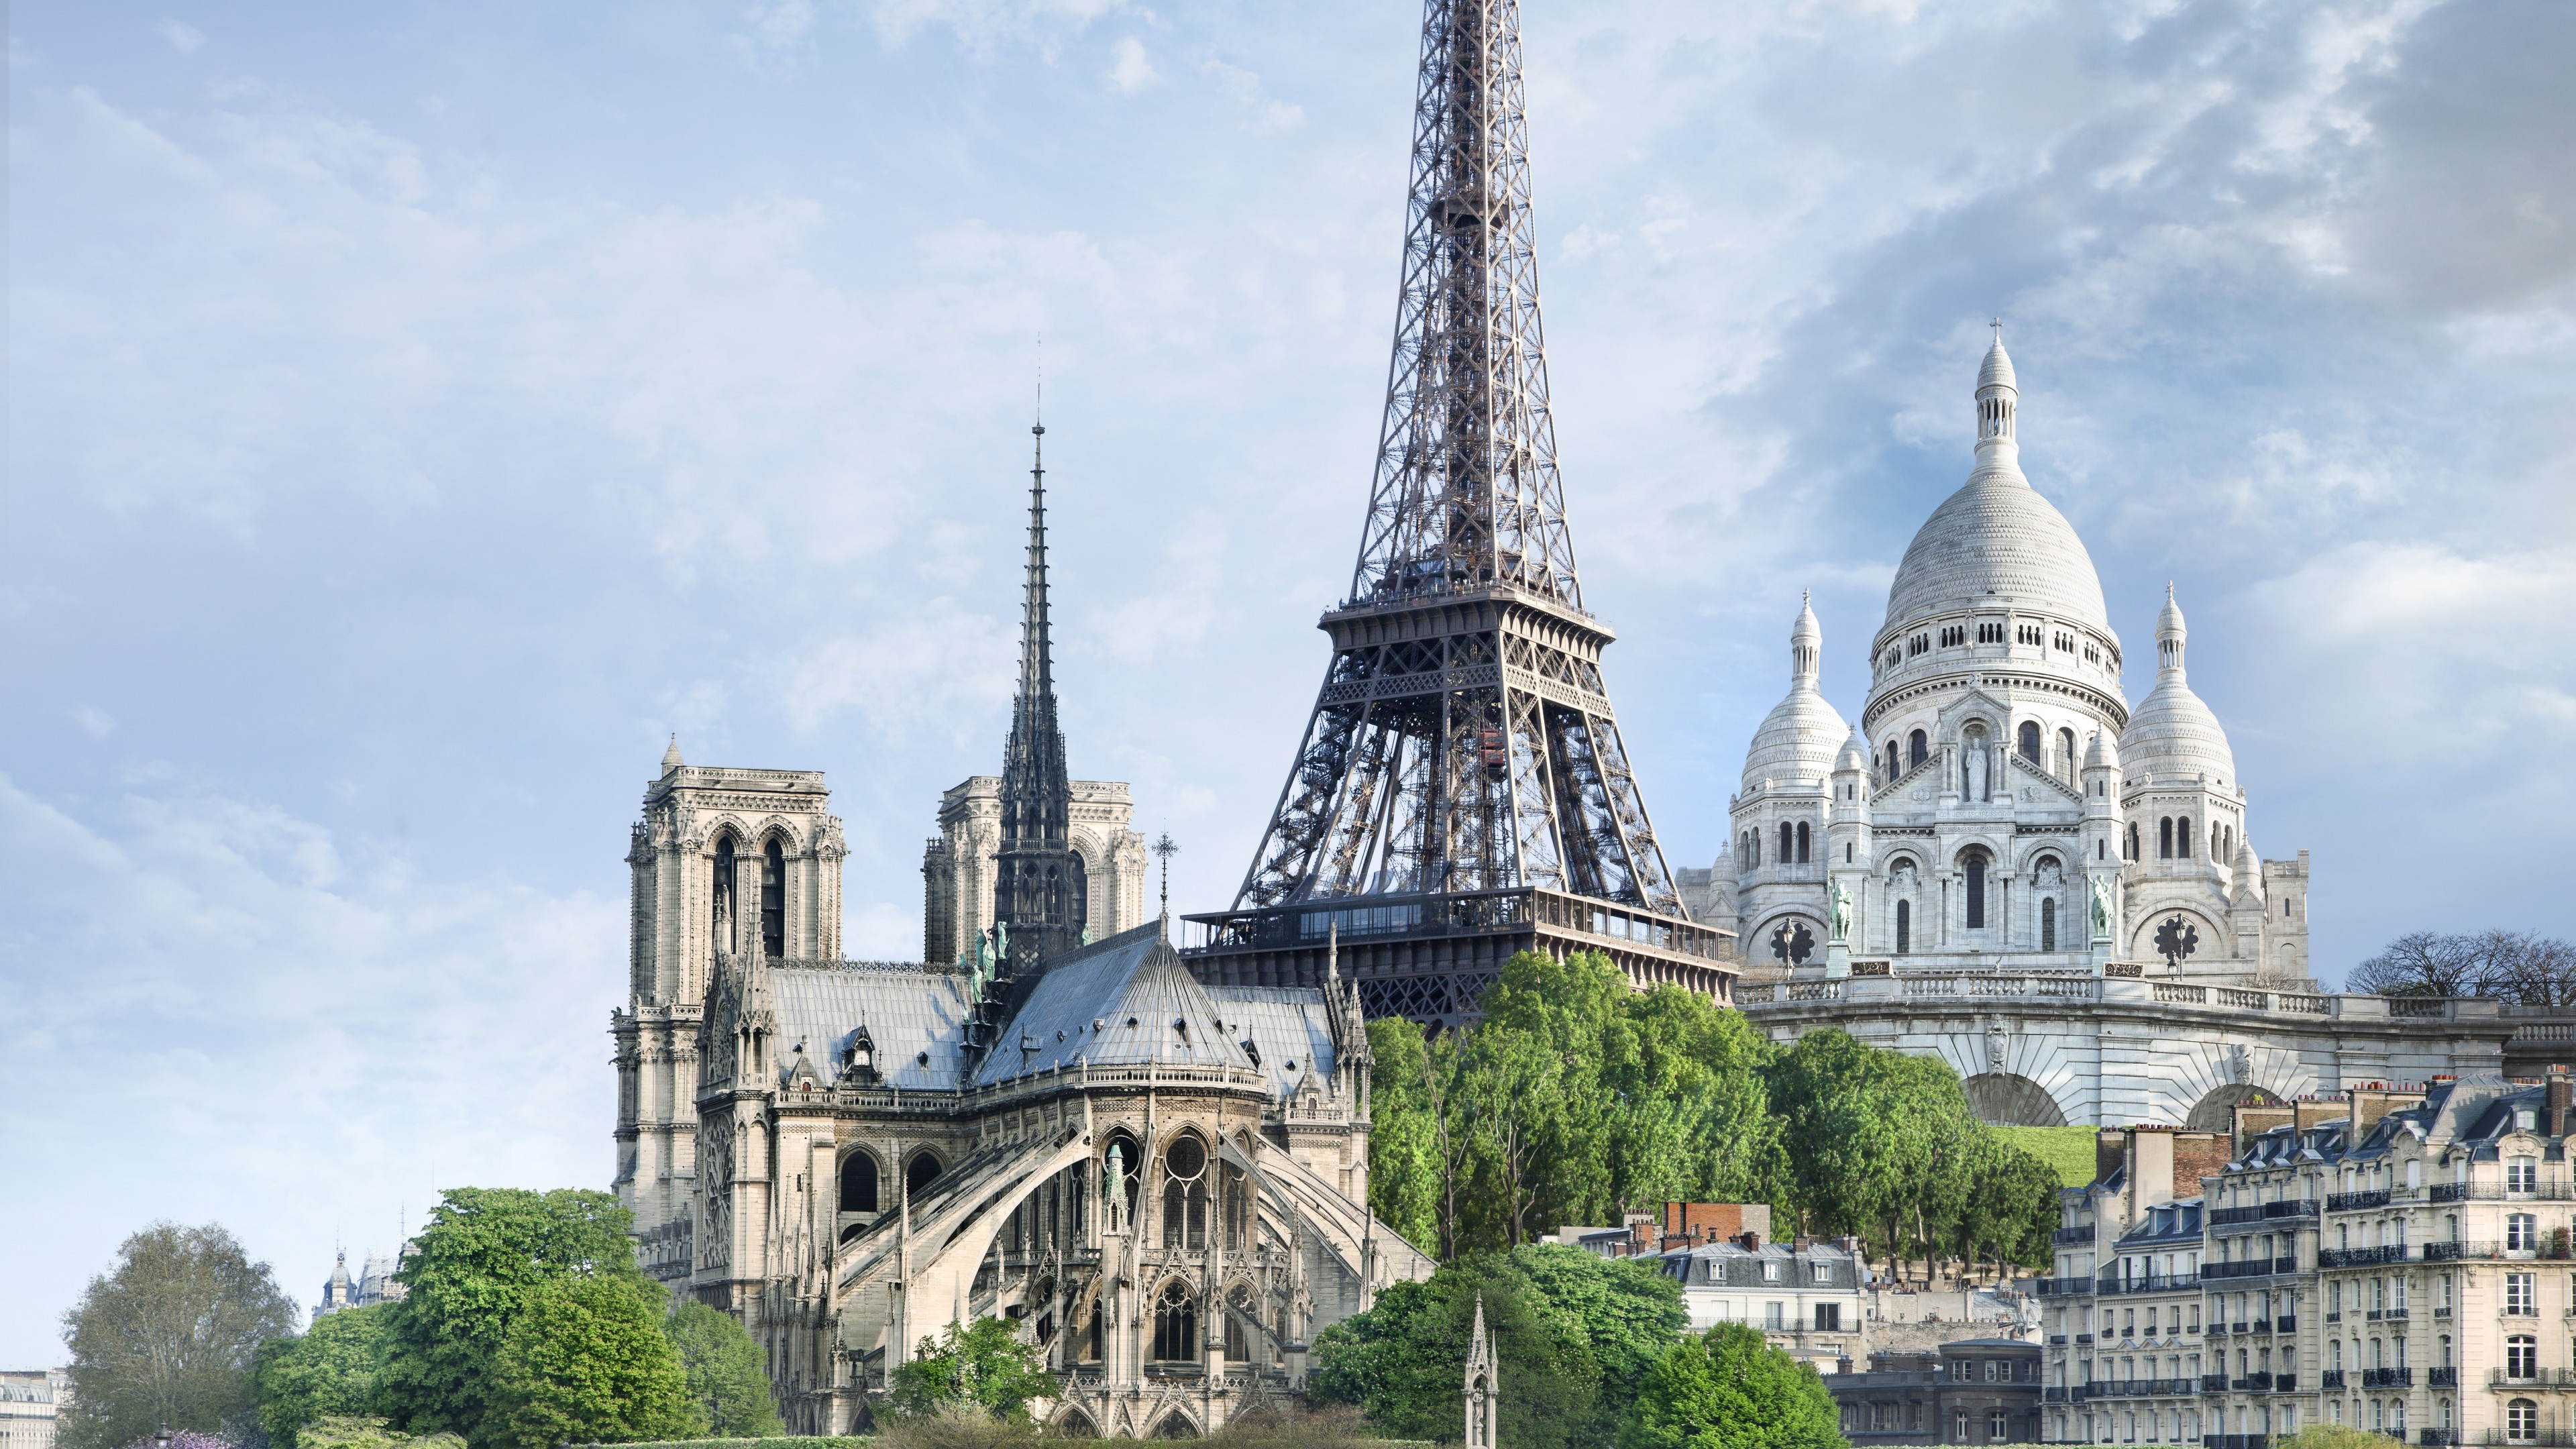 Wallpaper Paris France monuments travel tourism